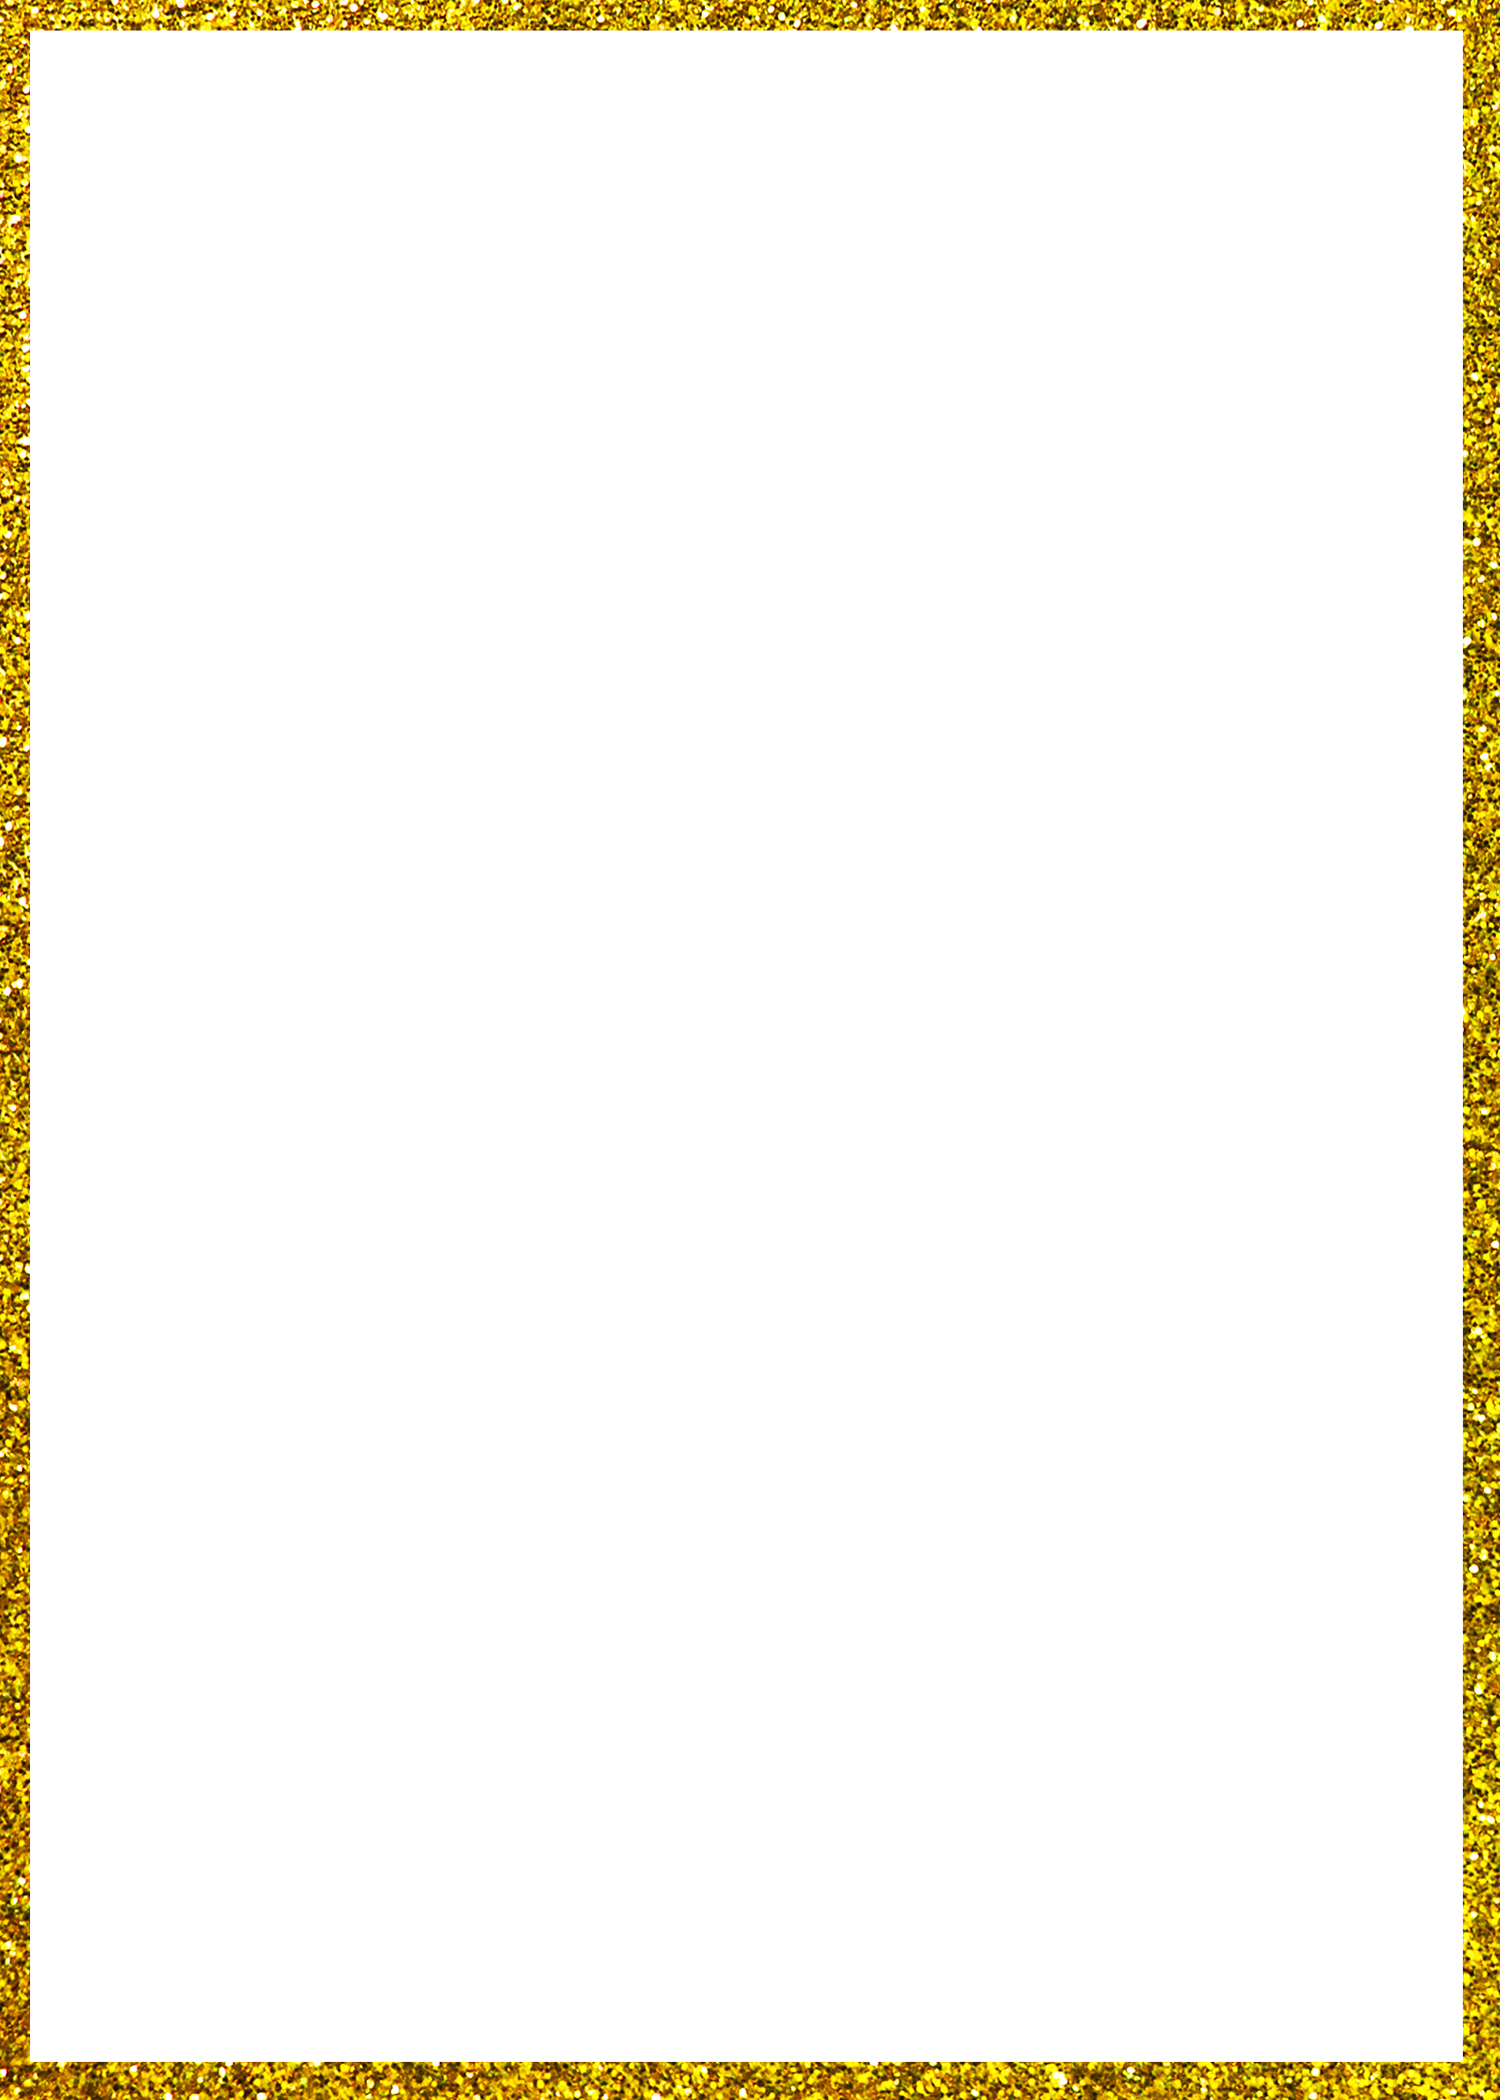 Hd pbl border rectangle. Frame clipart gold glitter